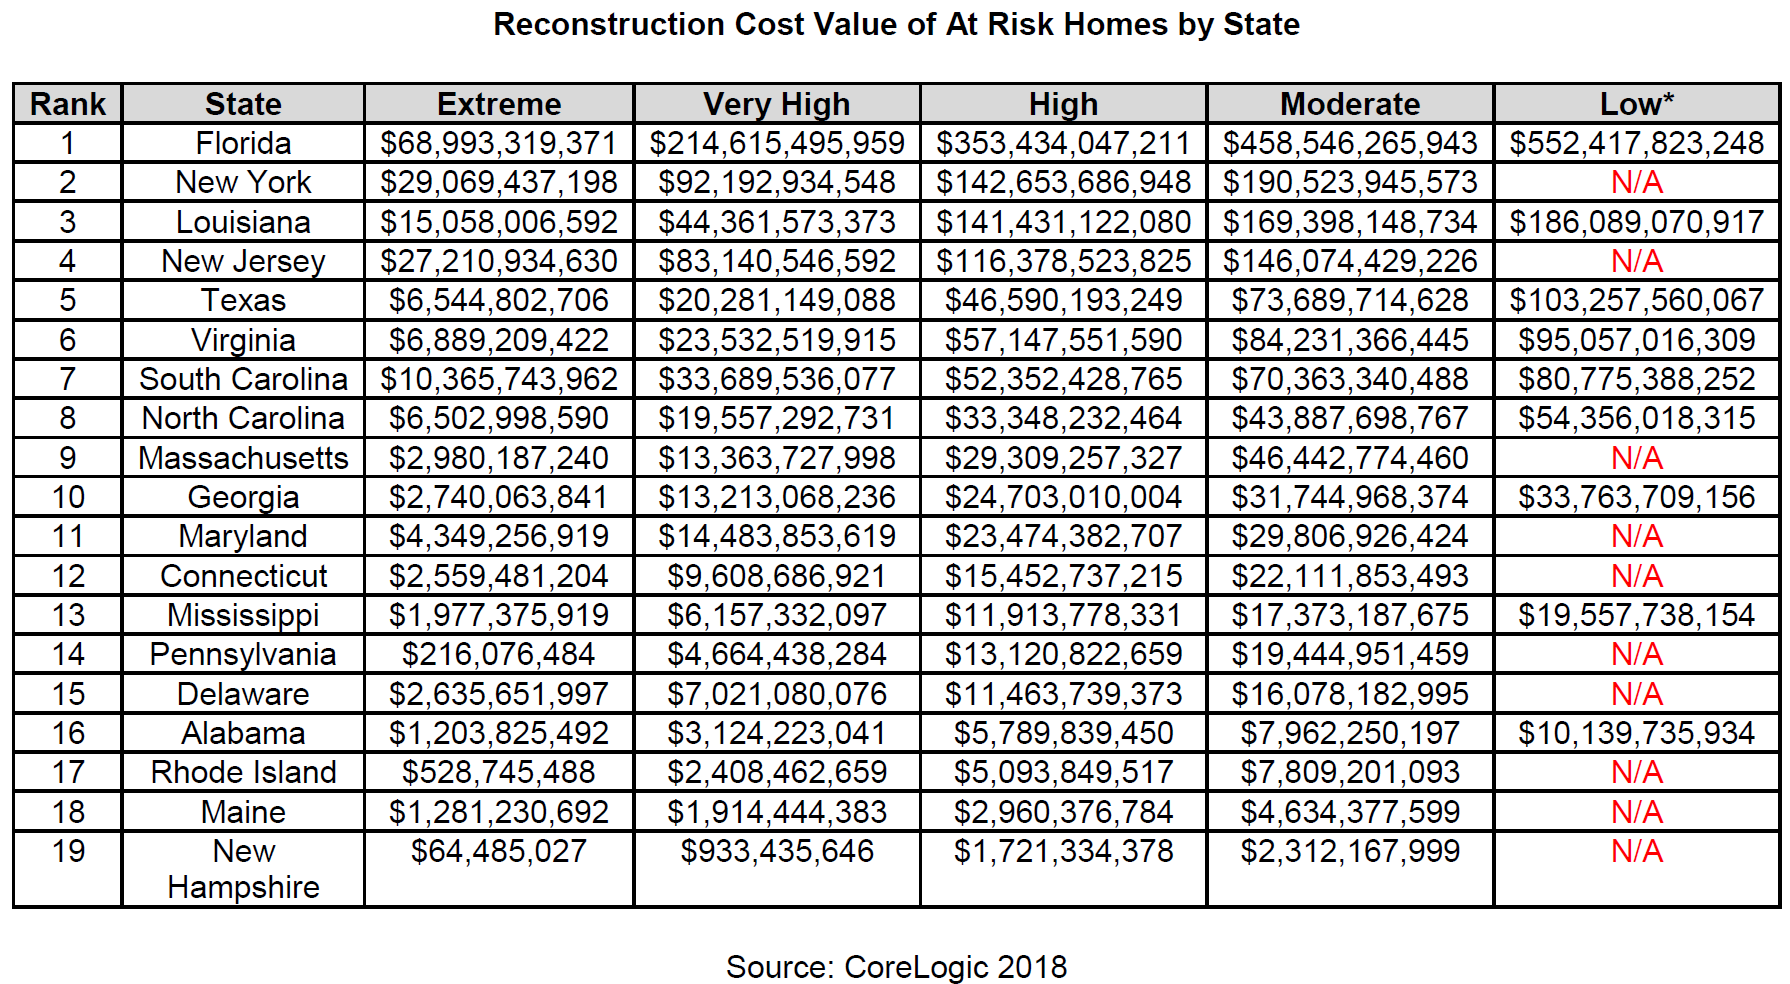 WPJ News | Reconstruction Cost Value of At Risk Homes by State